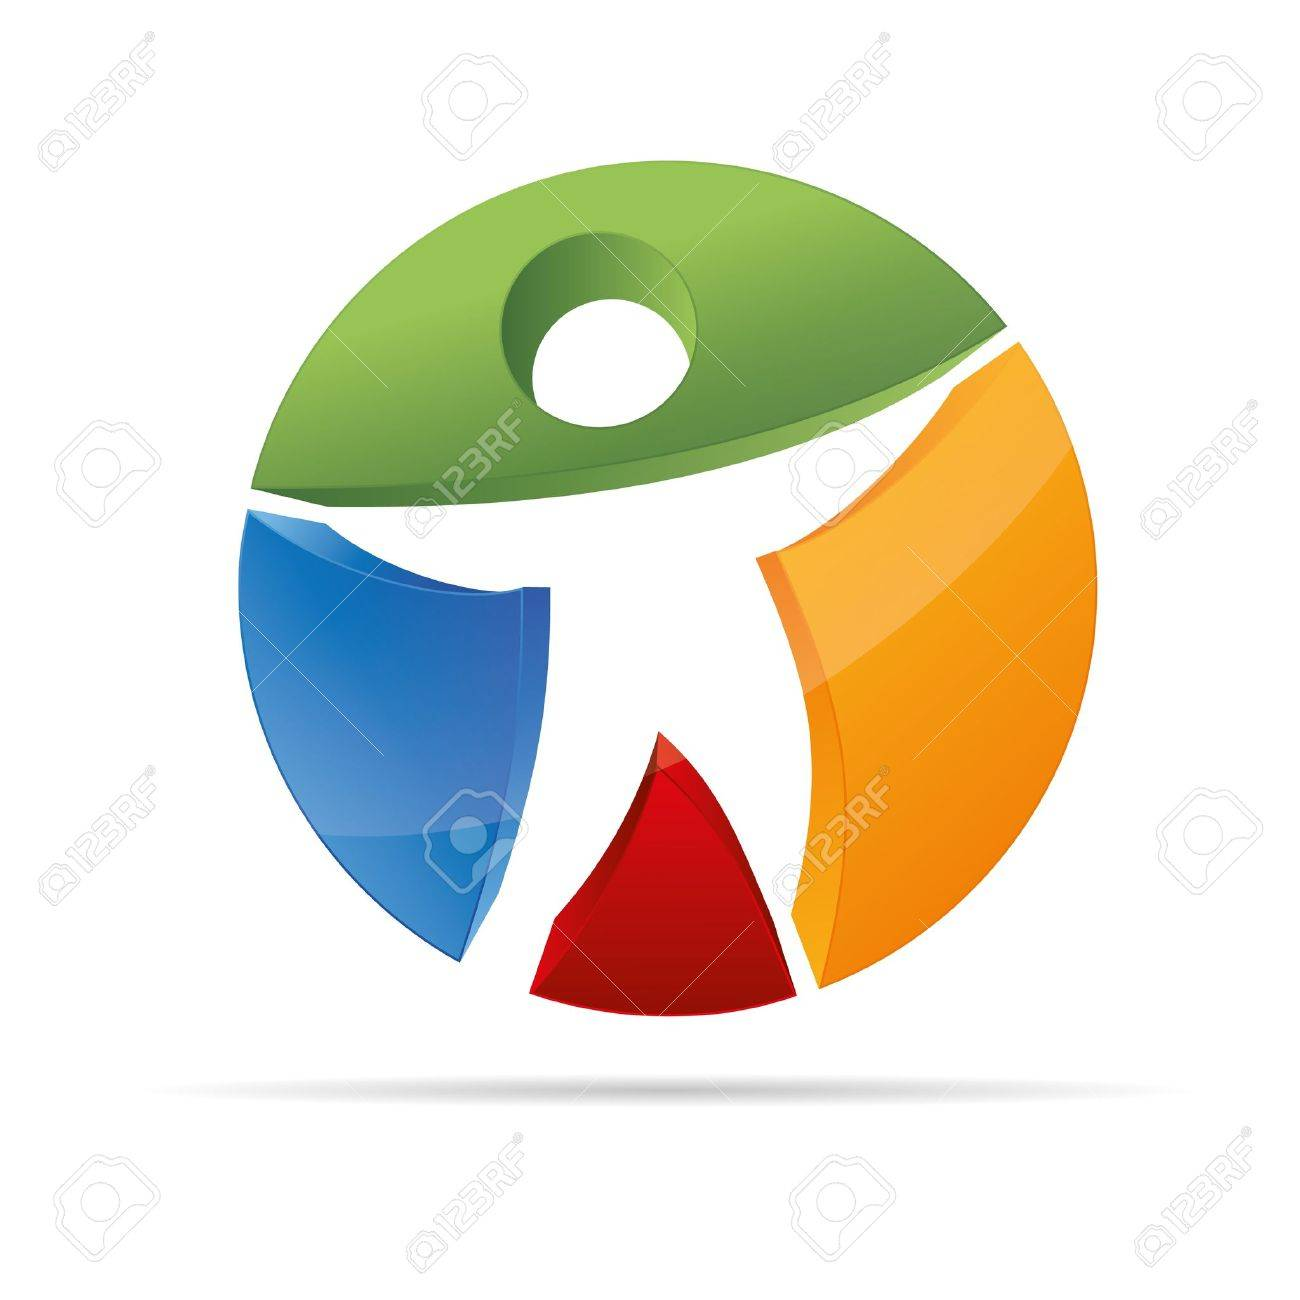 3D abstract figure in a Circle colorful stickman symbol corporate design icon logo trademark Stock Vector - 15362189